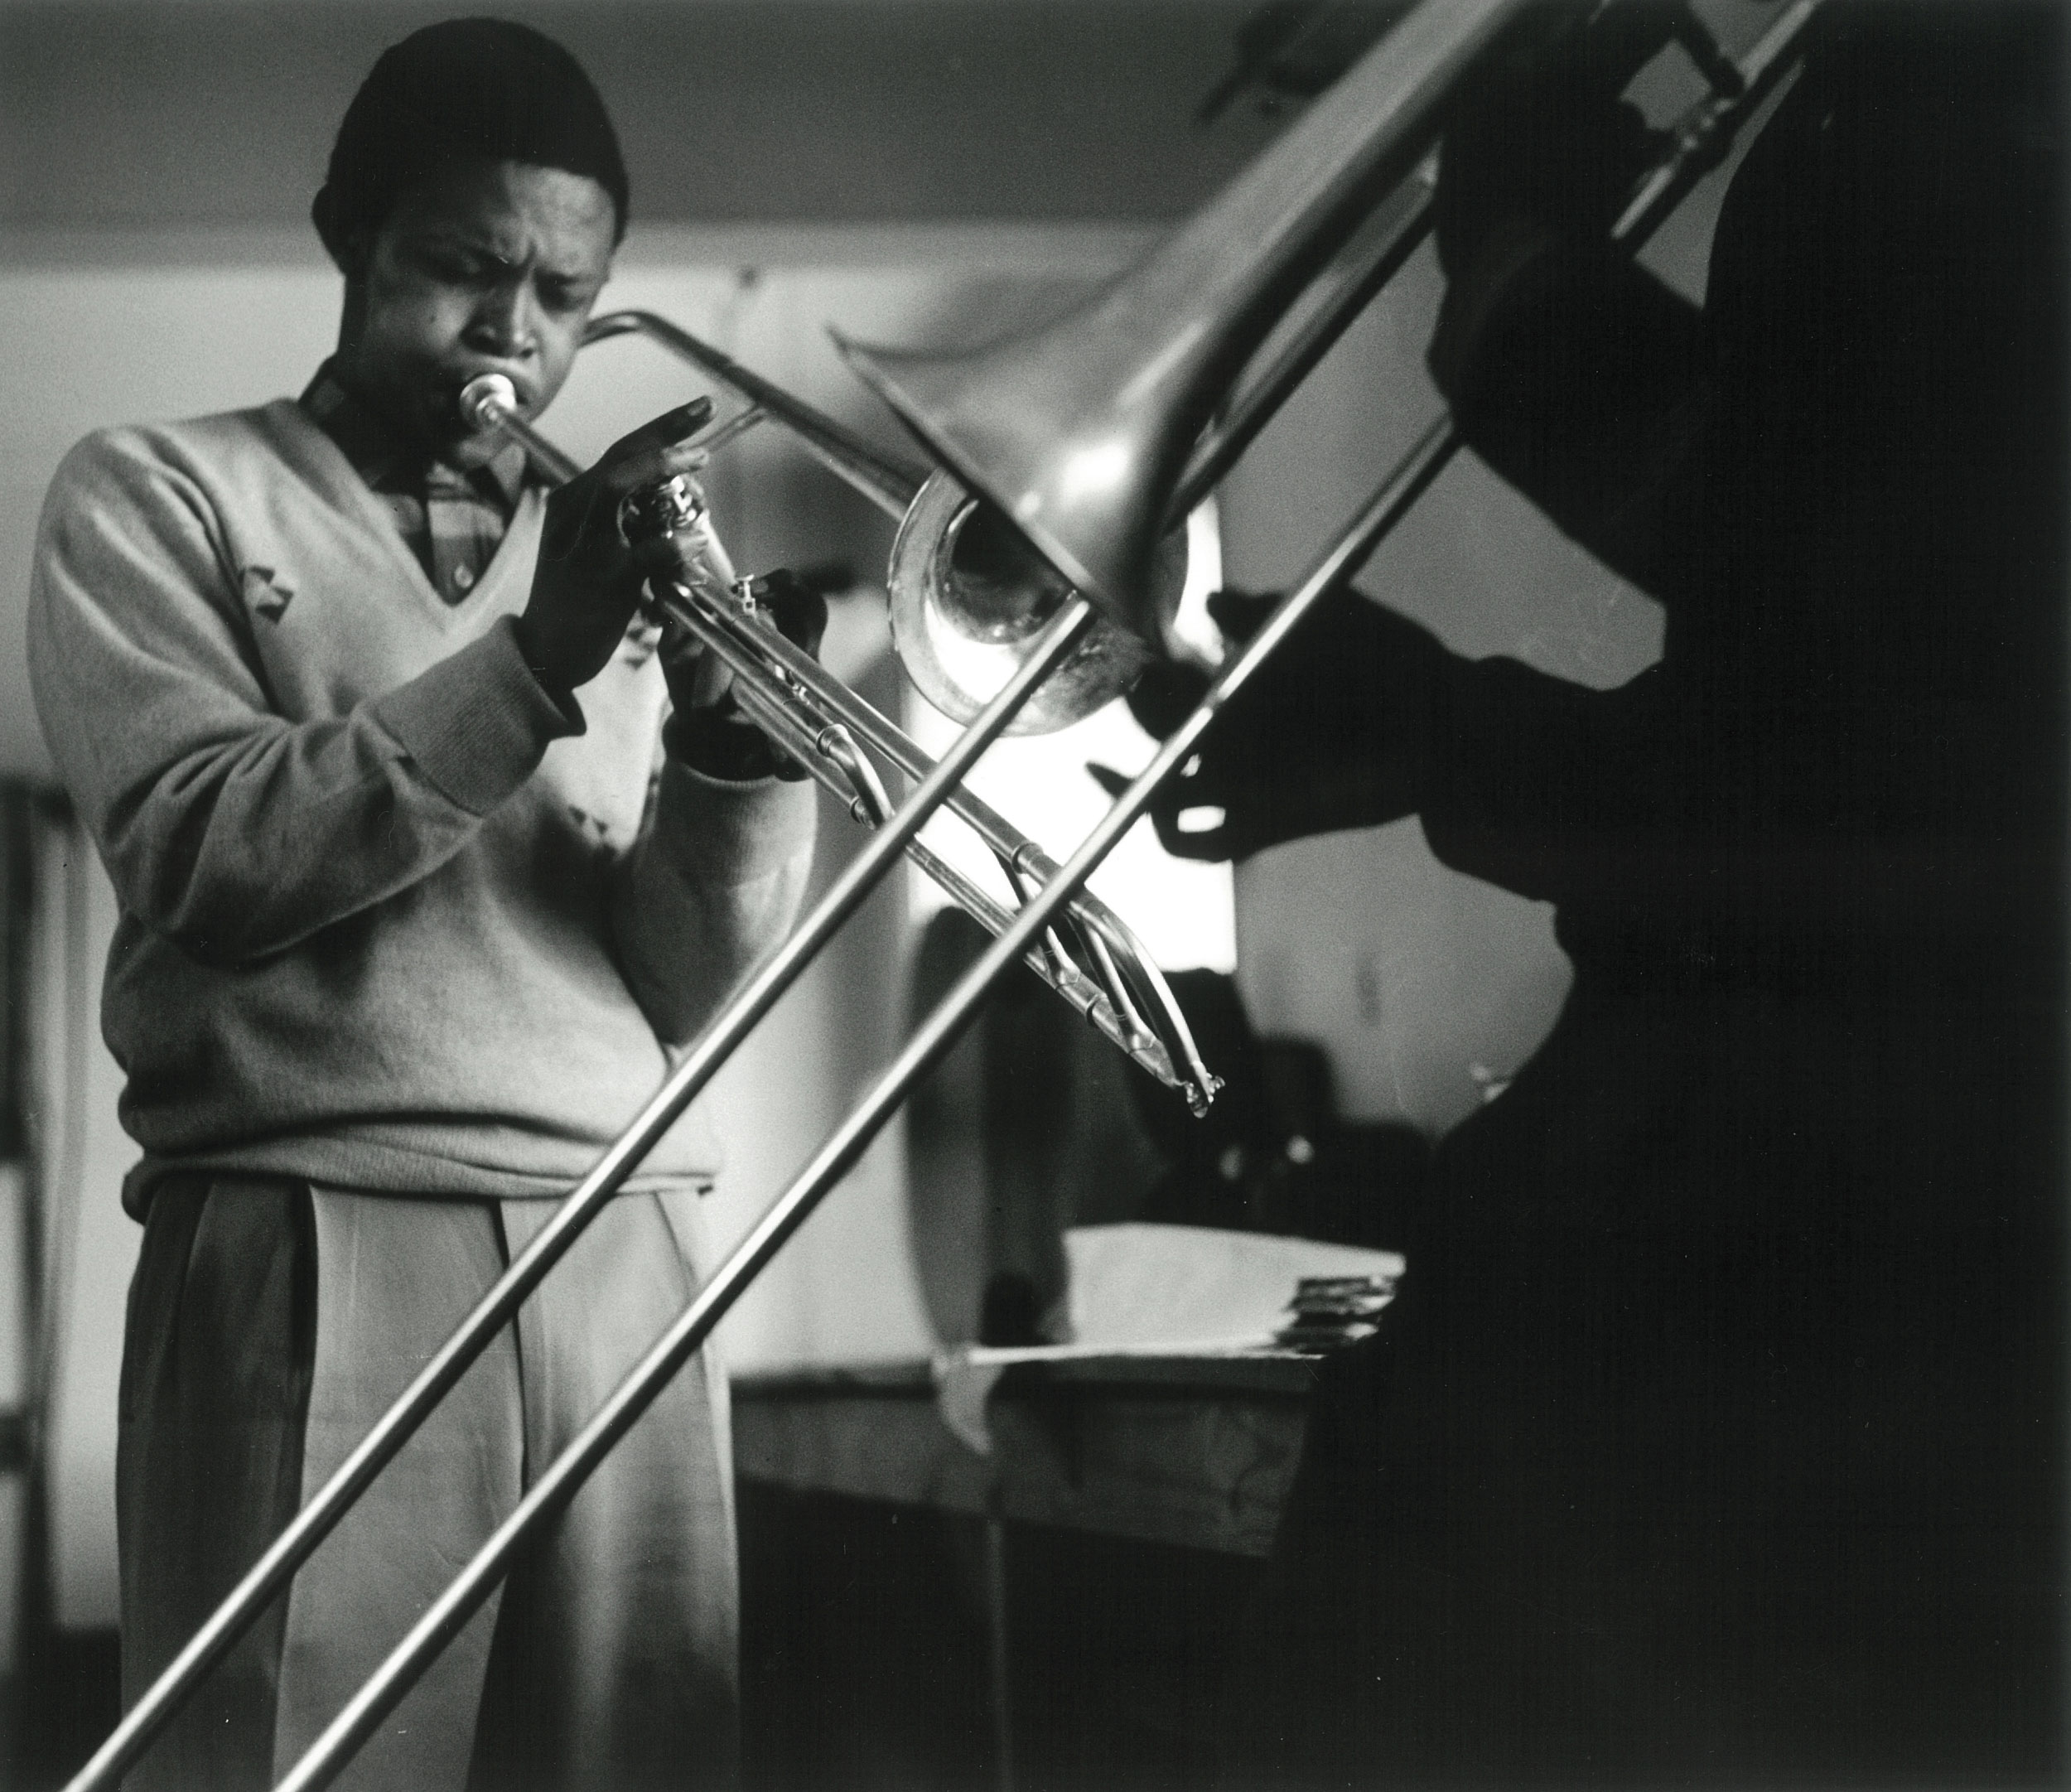 1956 – Hugh Masakela and Jonas Gwangwa practice at the Bantu Men's Social Club, Johannesburg   Courtesy of the Estate of John Goldblatt